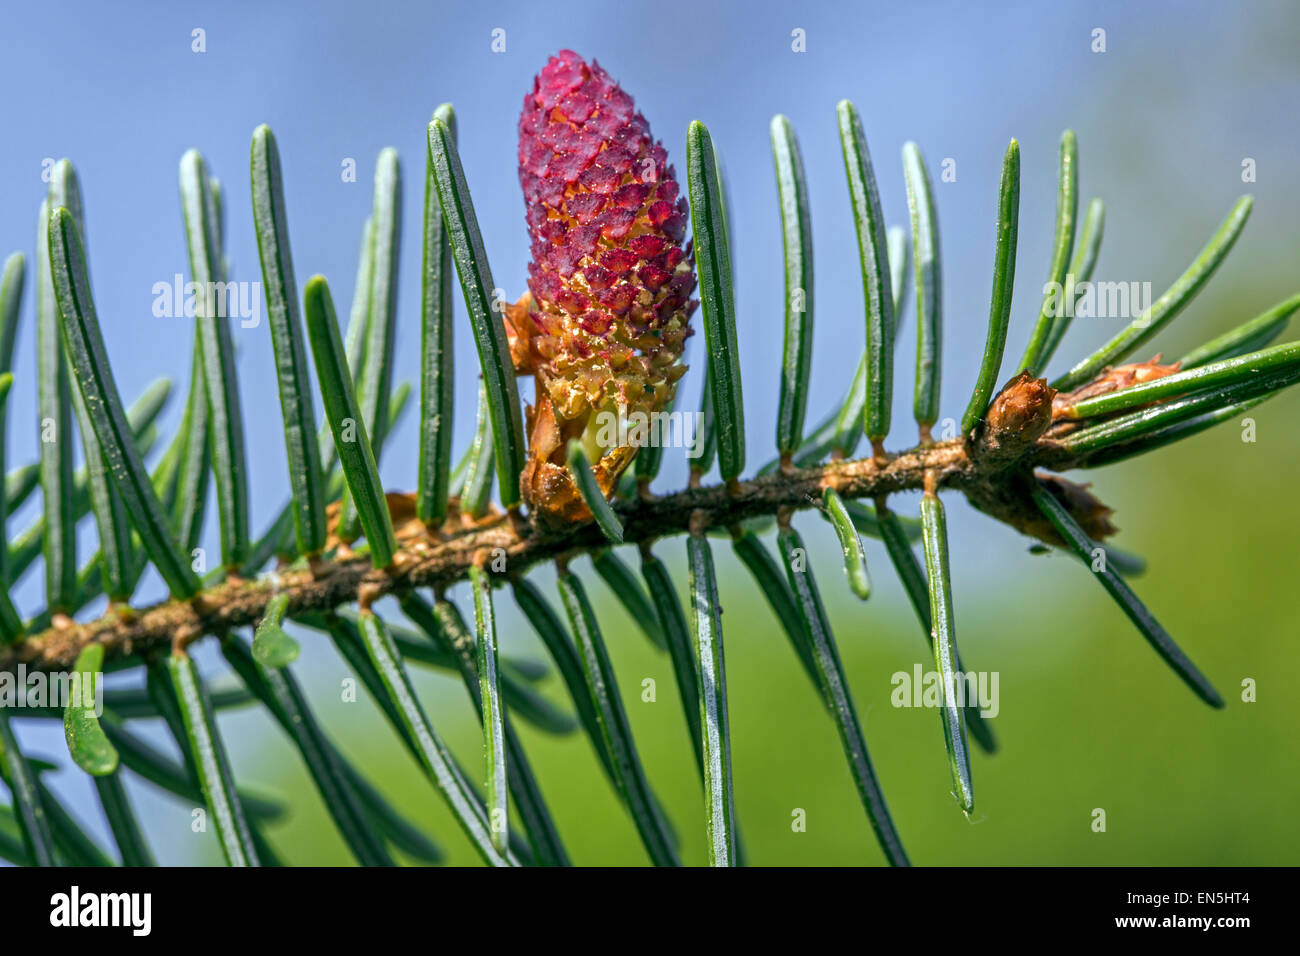 European silver fir (Abies alba) close up of male flower and needles - Stock Image